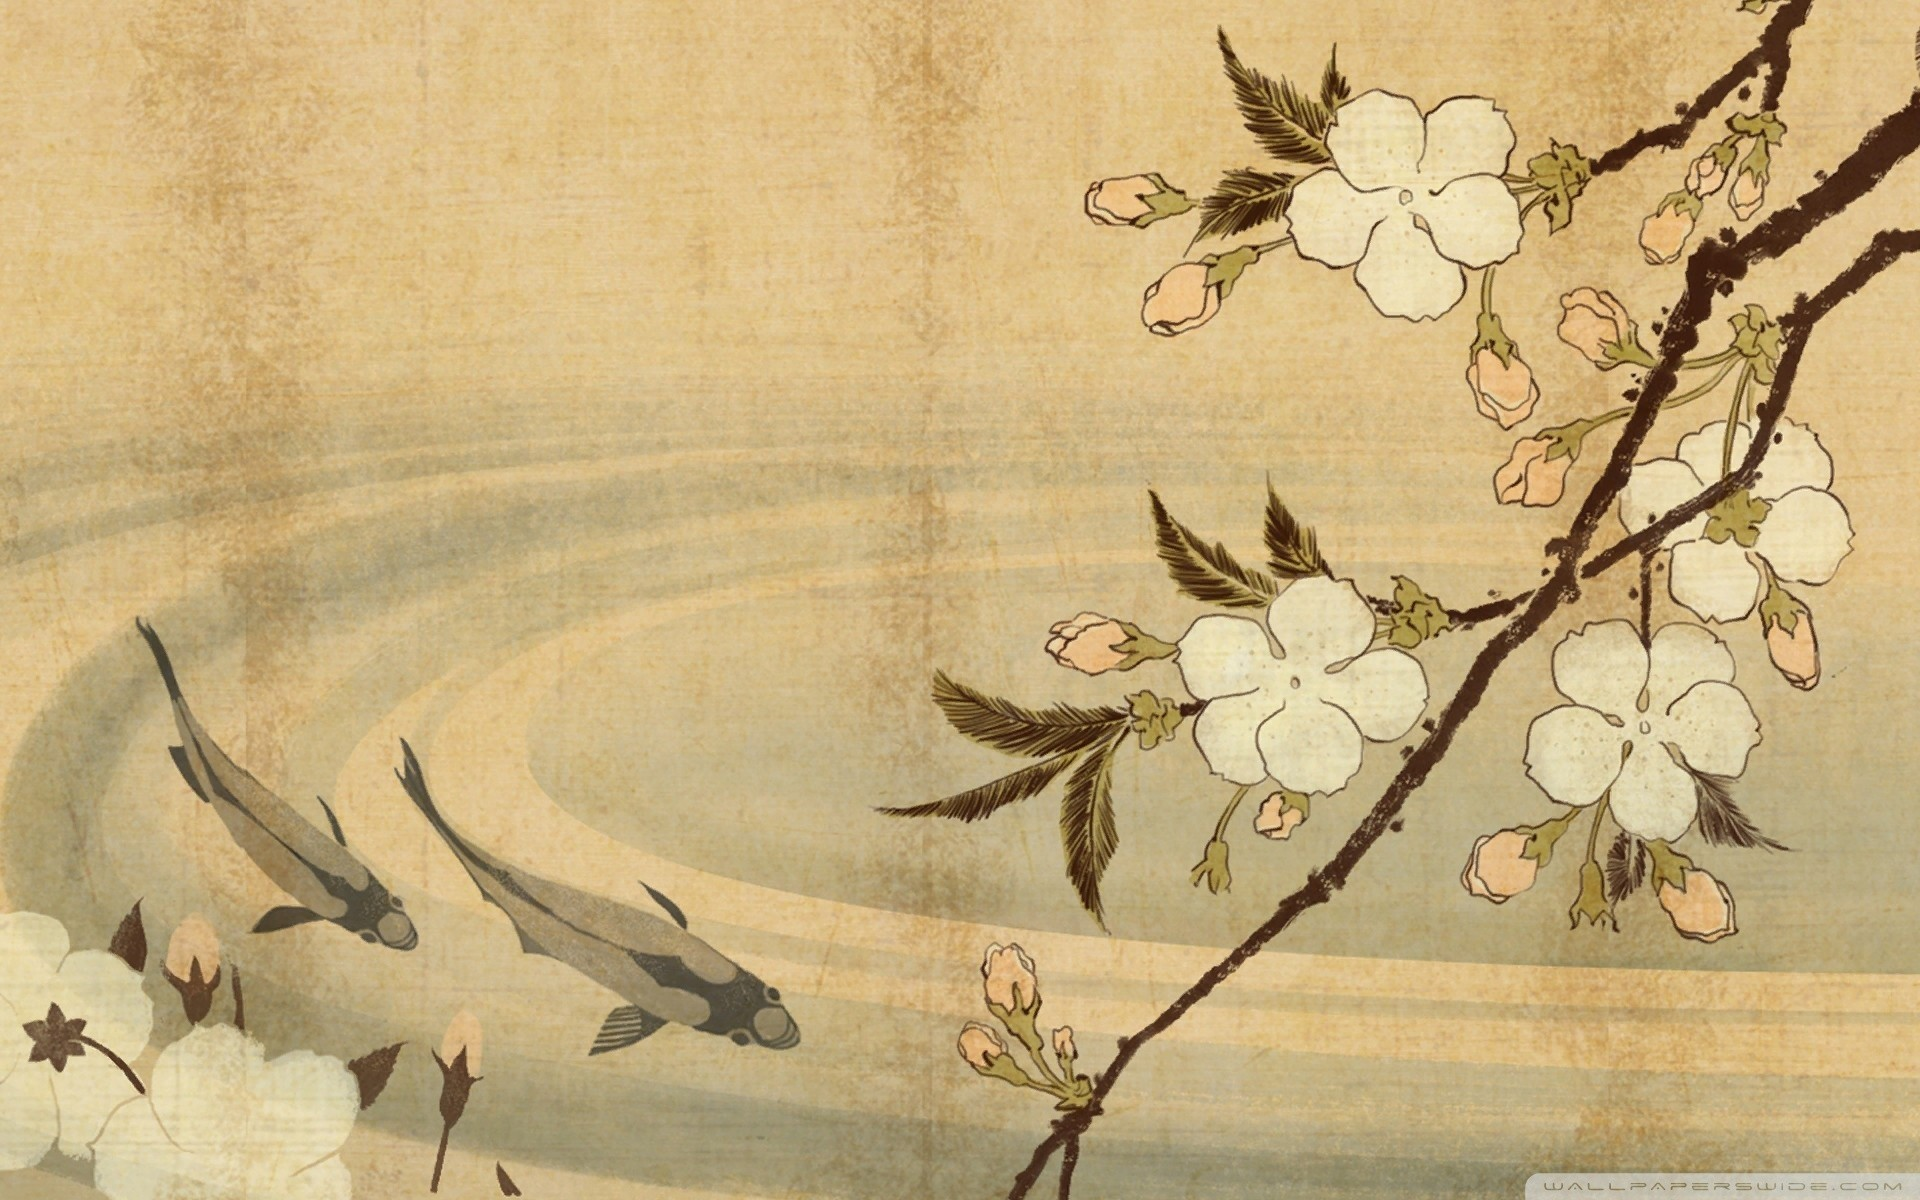 1920x1080, Ancient Japanese Art Wallpaper Pictures - Japanese Print Hd , HD Wallpaper & Backgrounds